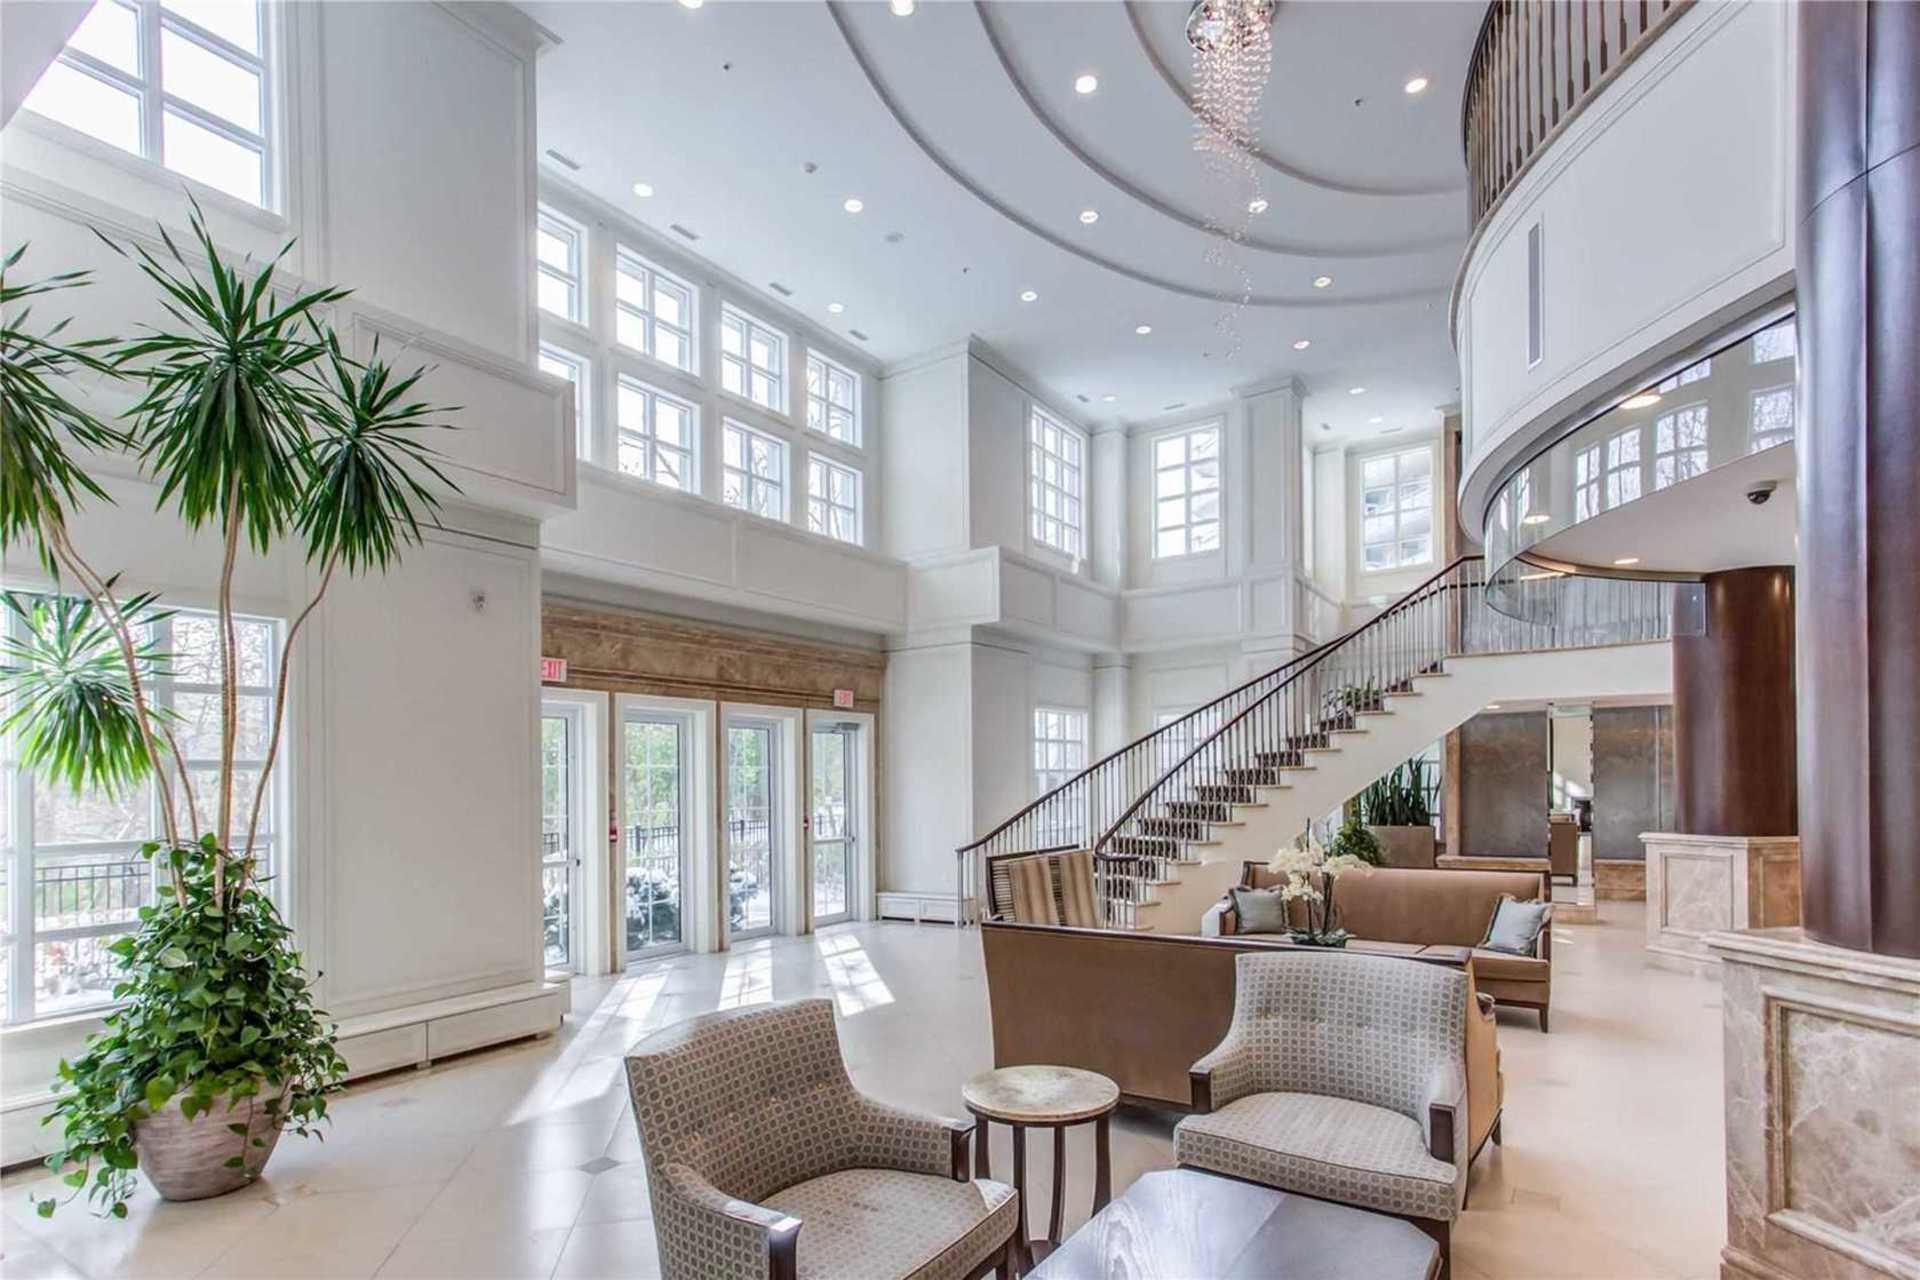 Lobby at 1209 - 10 Bloorview Place, Don Valley Village, Toronto